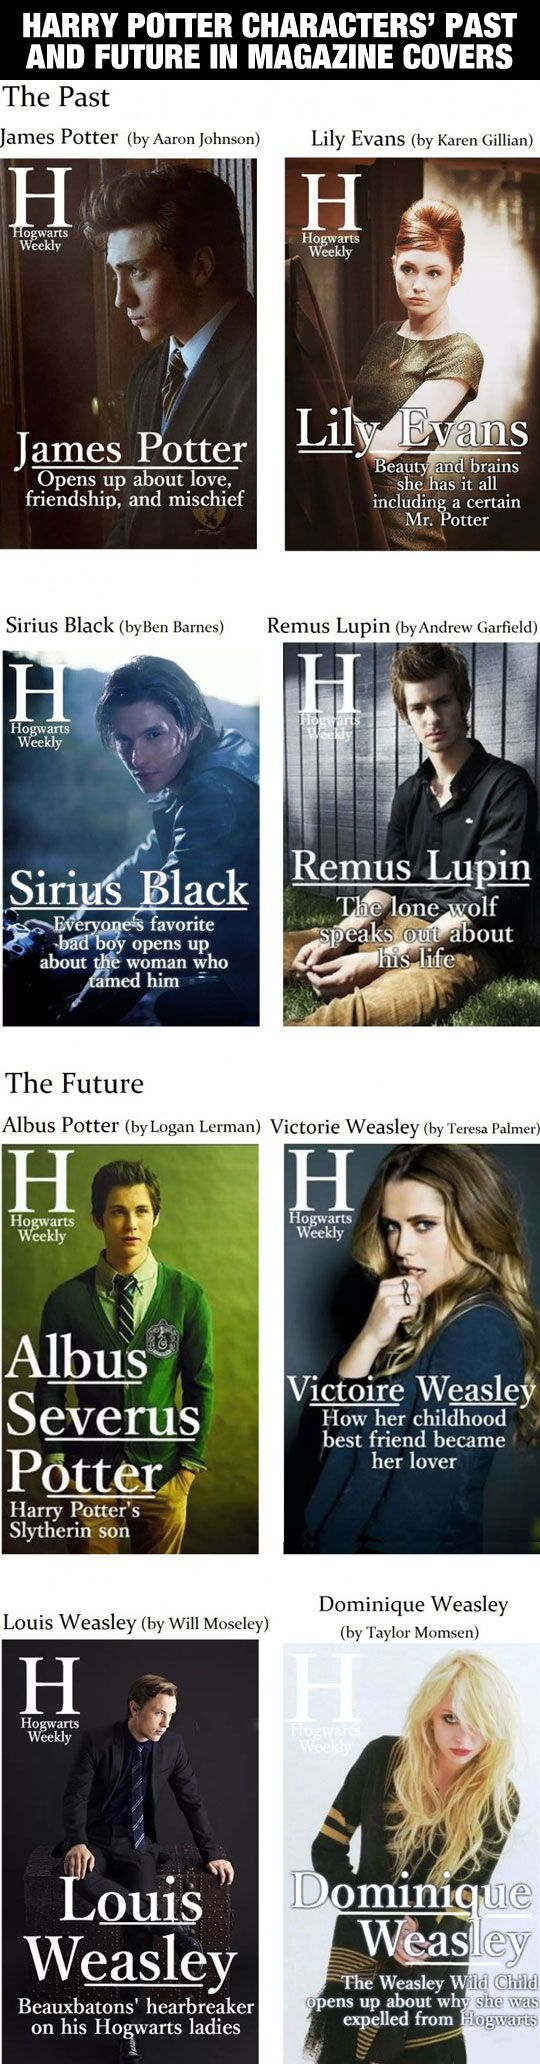 Harry Potter↞ Am I the only one who would really REALLY like to read these articles?!?!